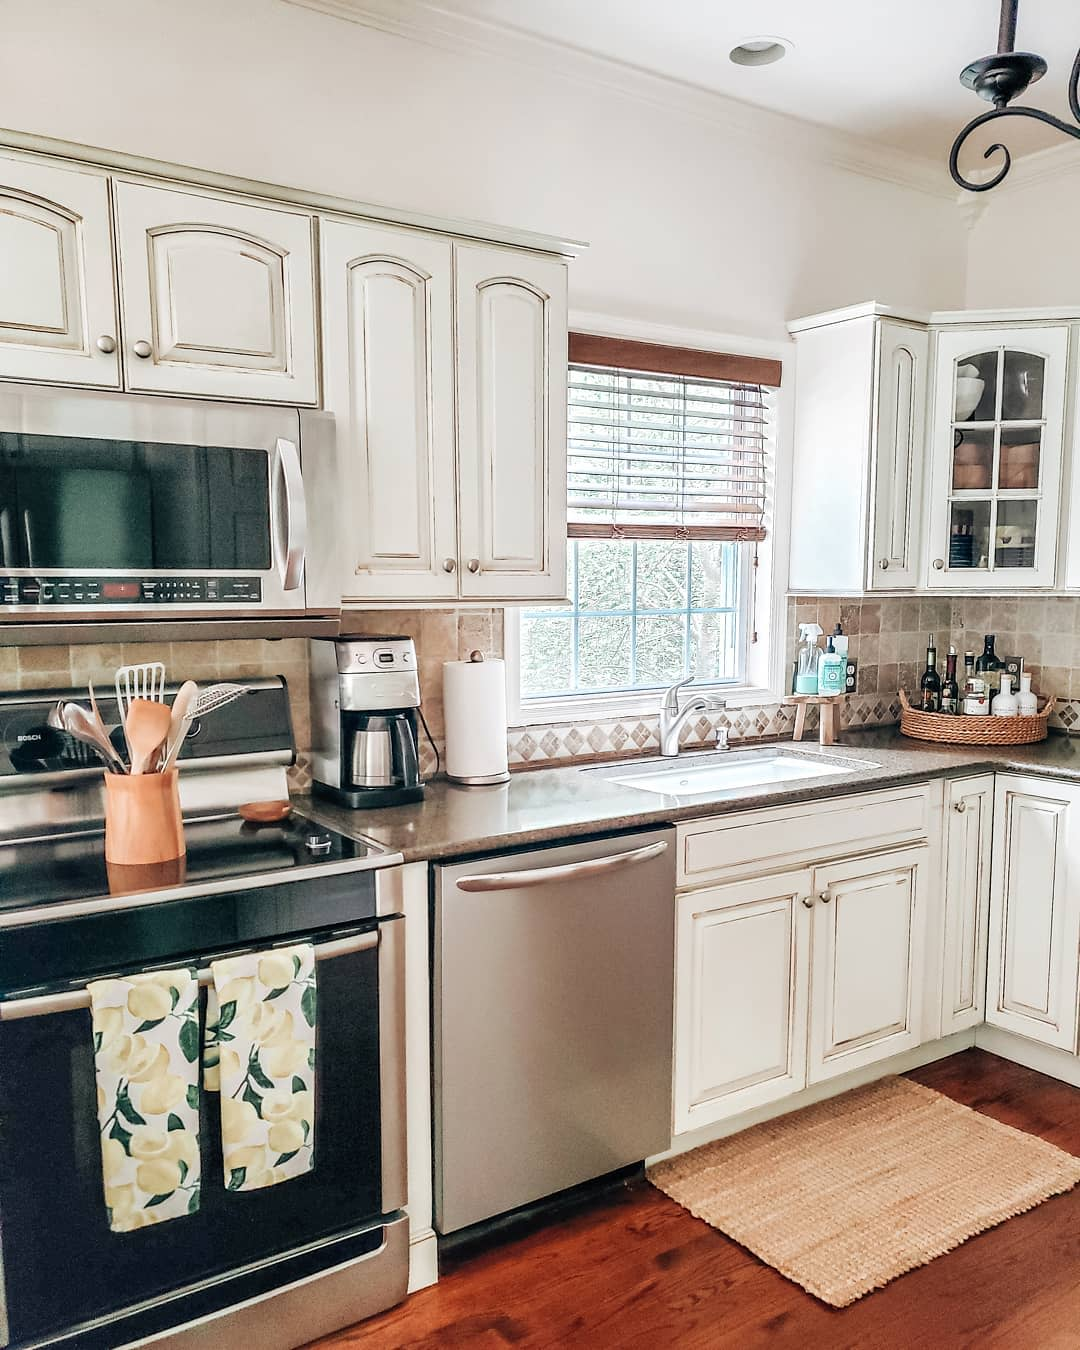 Rustic Kitchen Cabinet Ideas -wineanddesignme